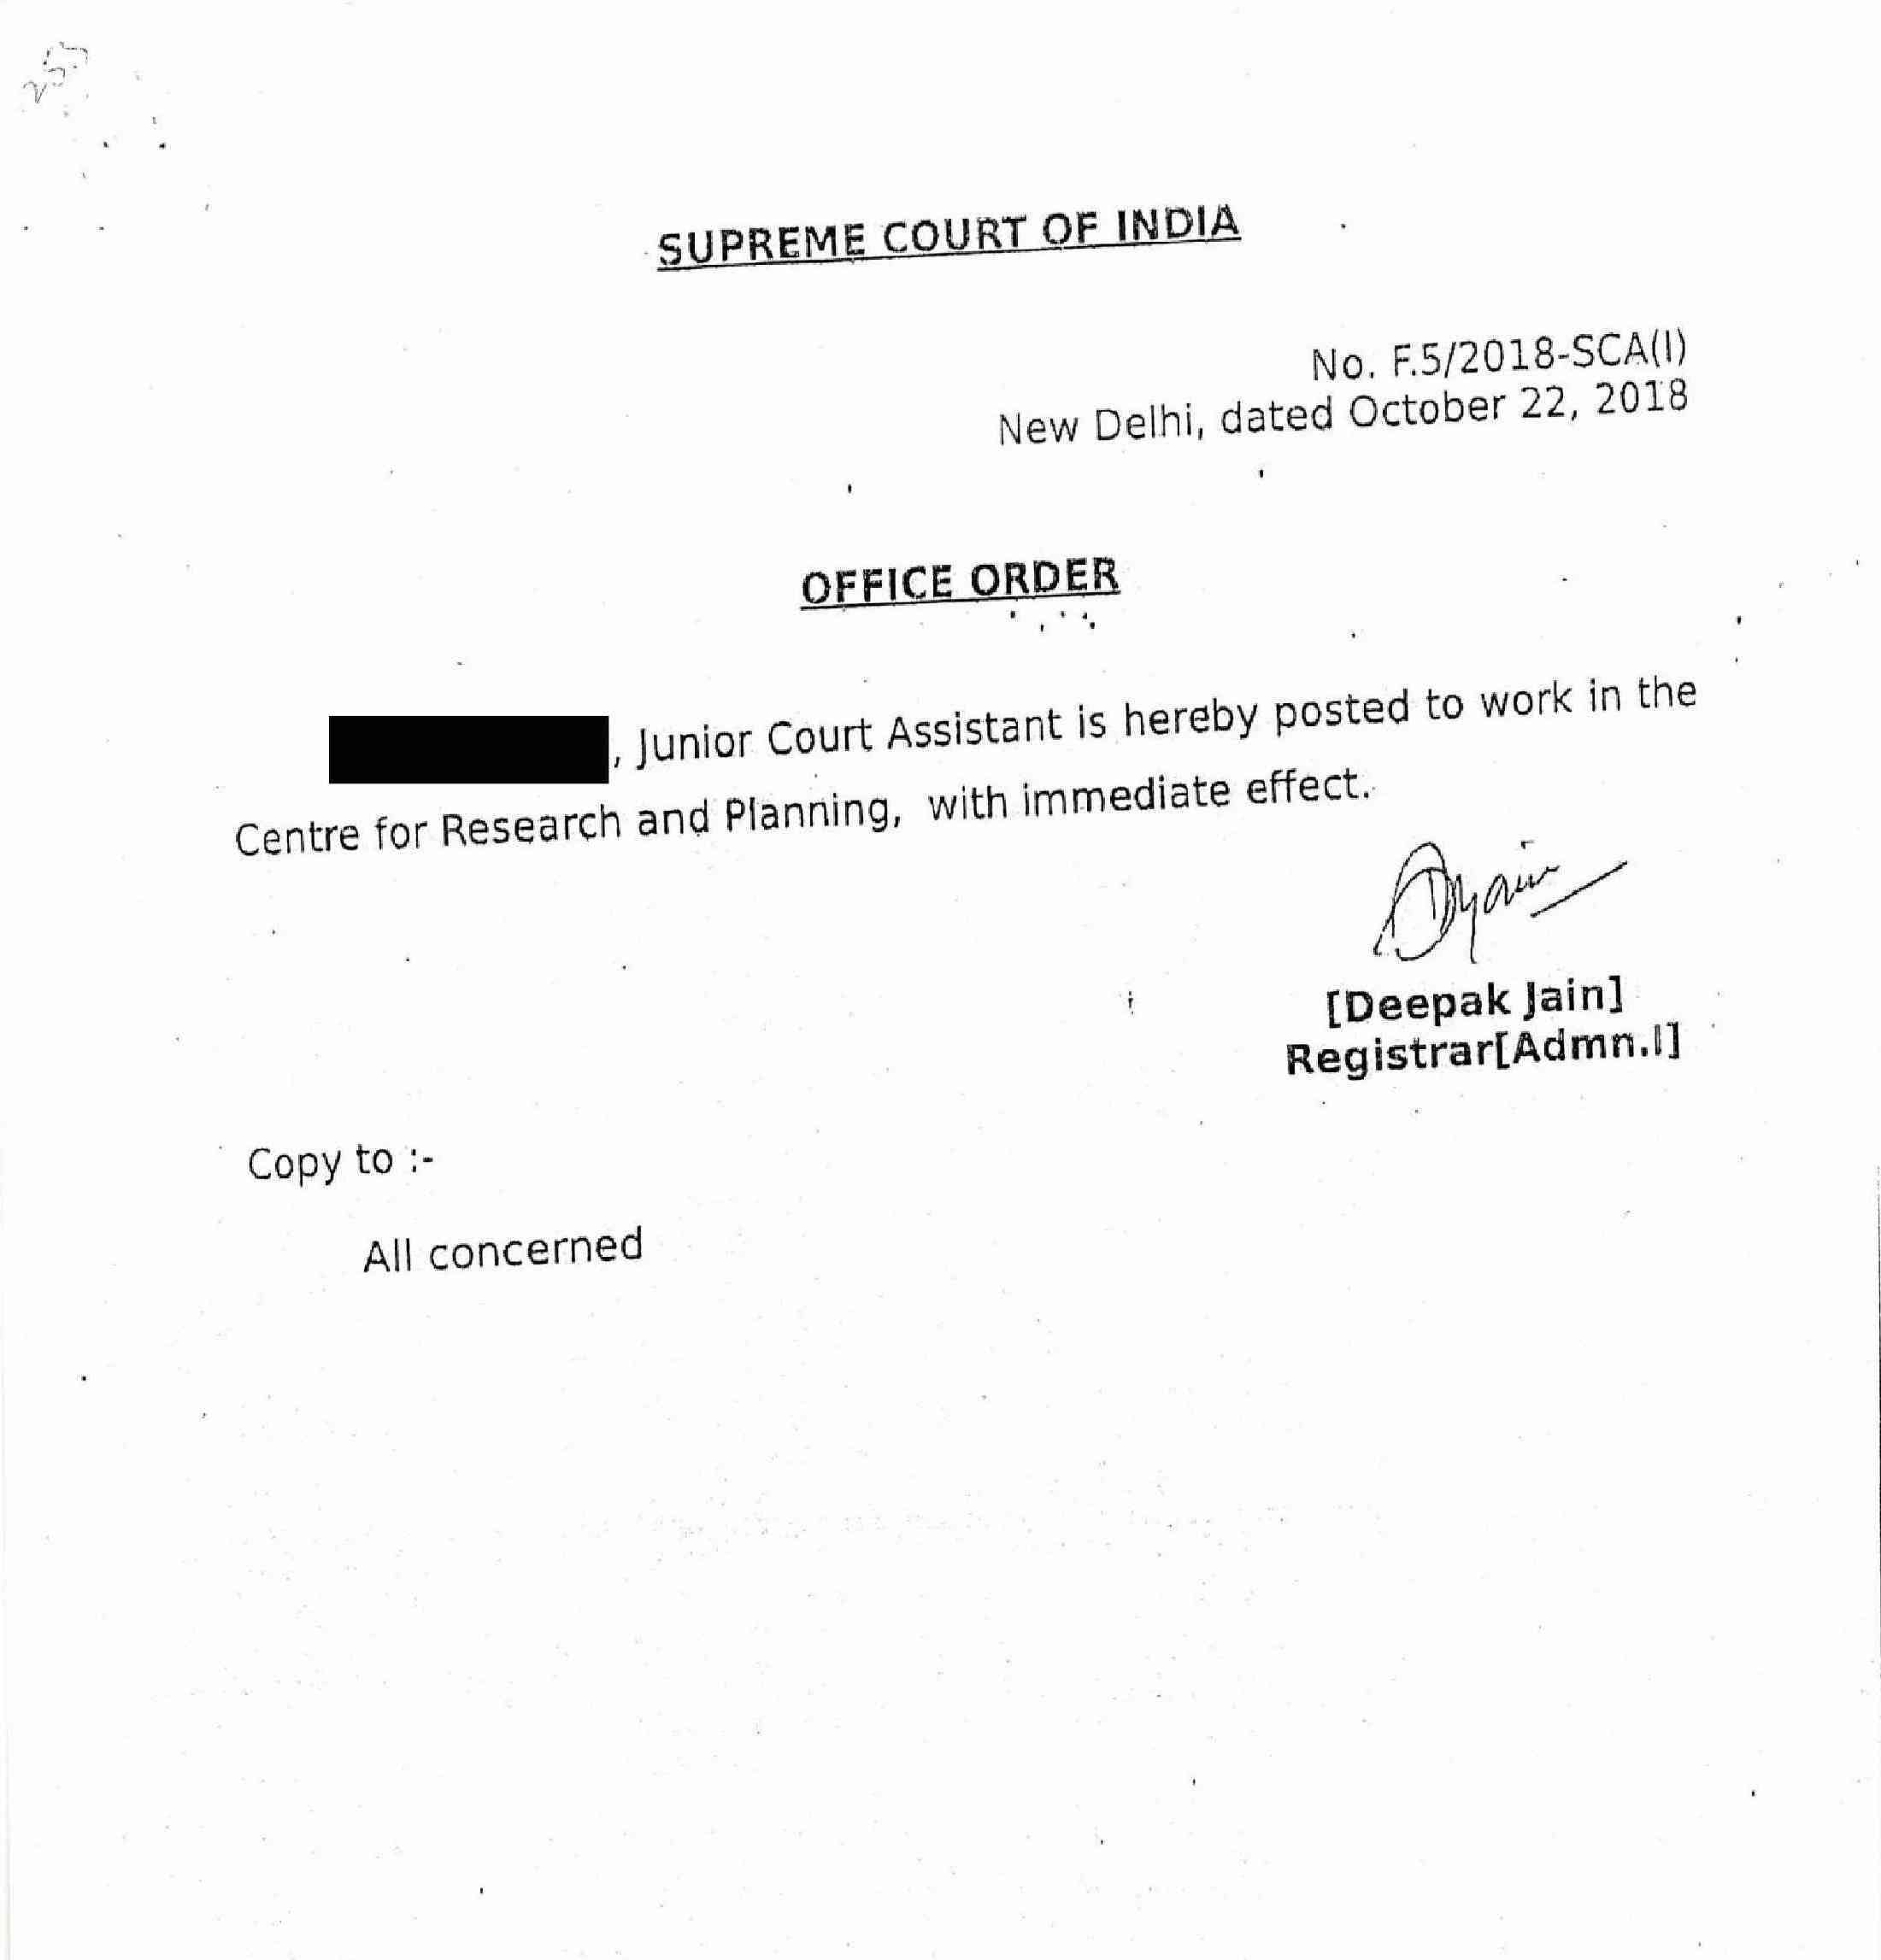 Chief Justice of India Ranjan Gogoi sexually harassed me